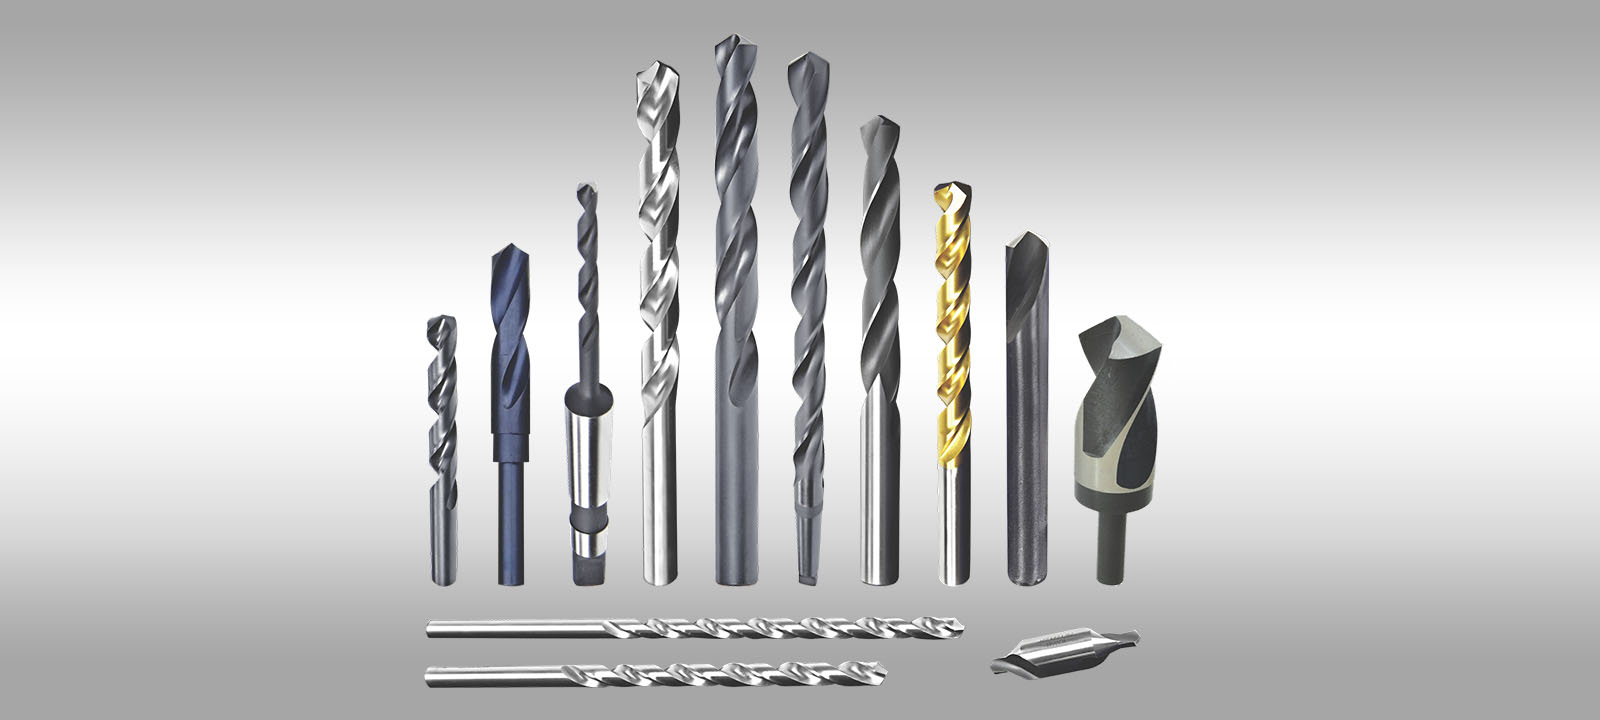 7a599e0e45ec Miranda Tools | Cutting Tool Manufacturers and Suppliers